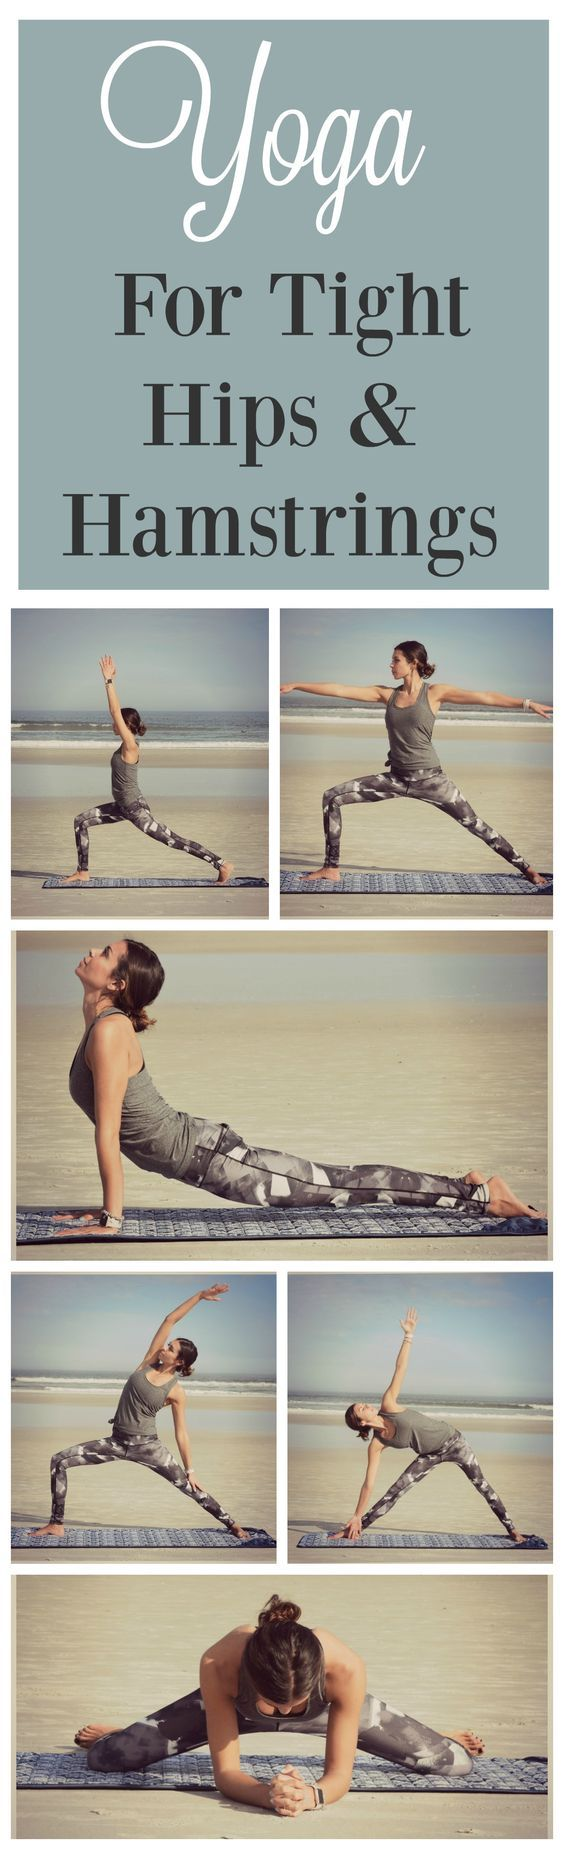 39++ Yoga for hips and hamstrings ideas in 2021